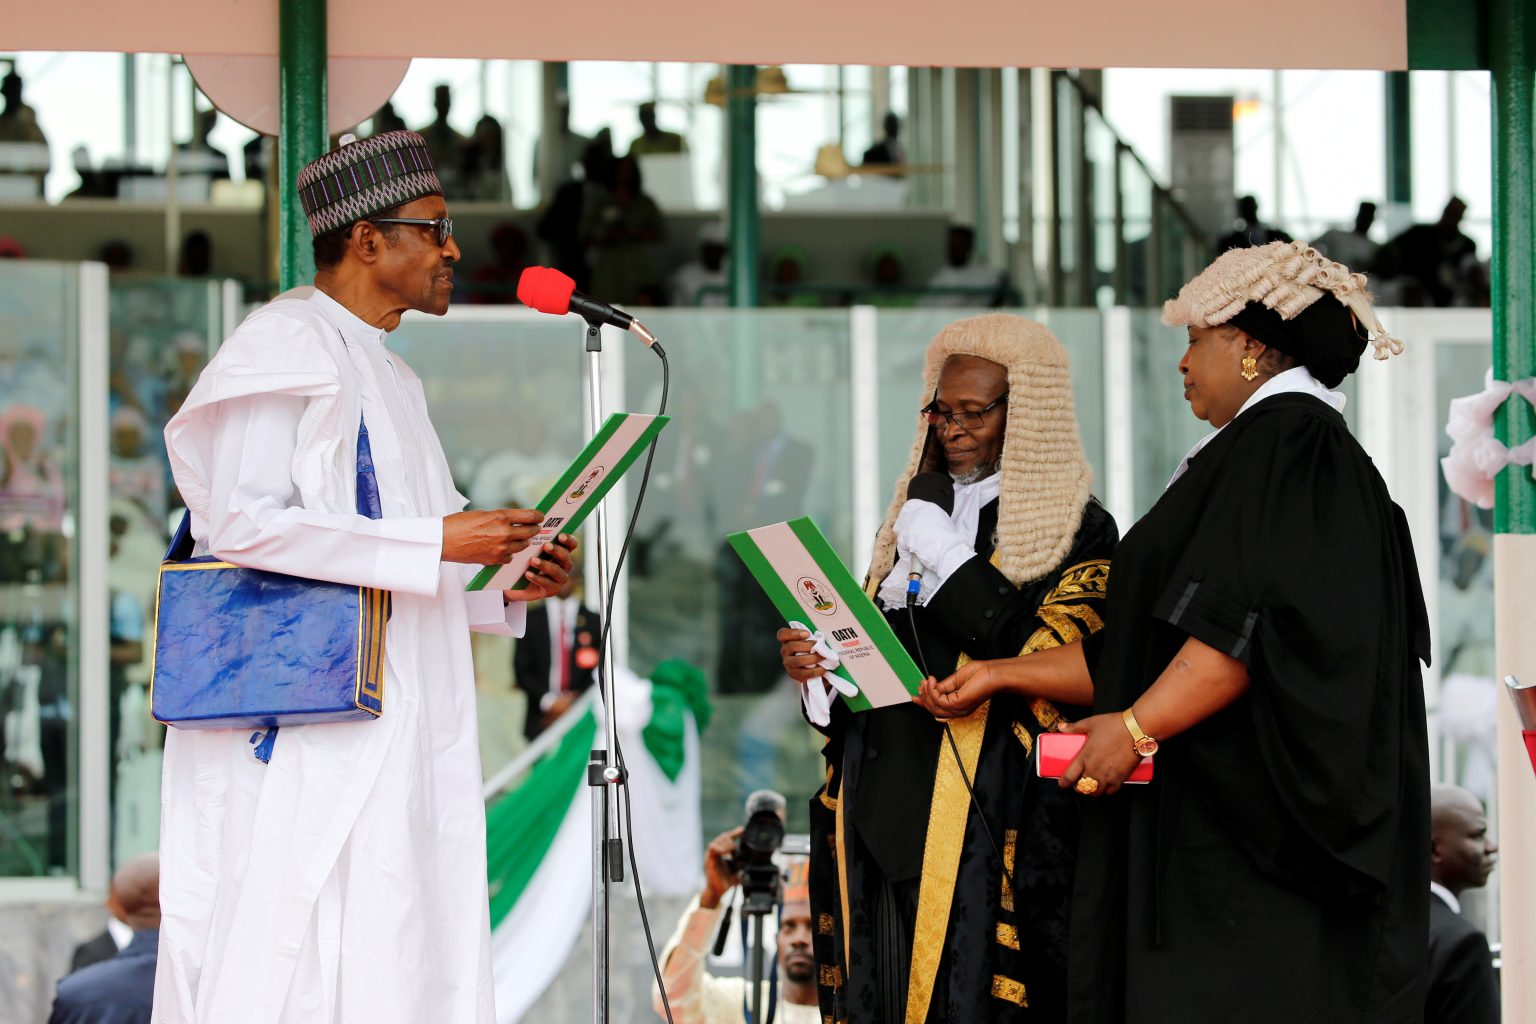 Nigerian President Muhammadu Buhari takes the oath of office during his inauguration for a second term in Abuja